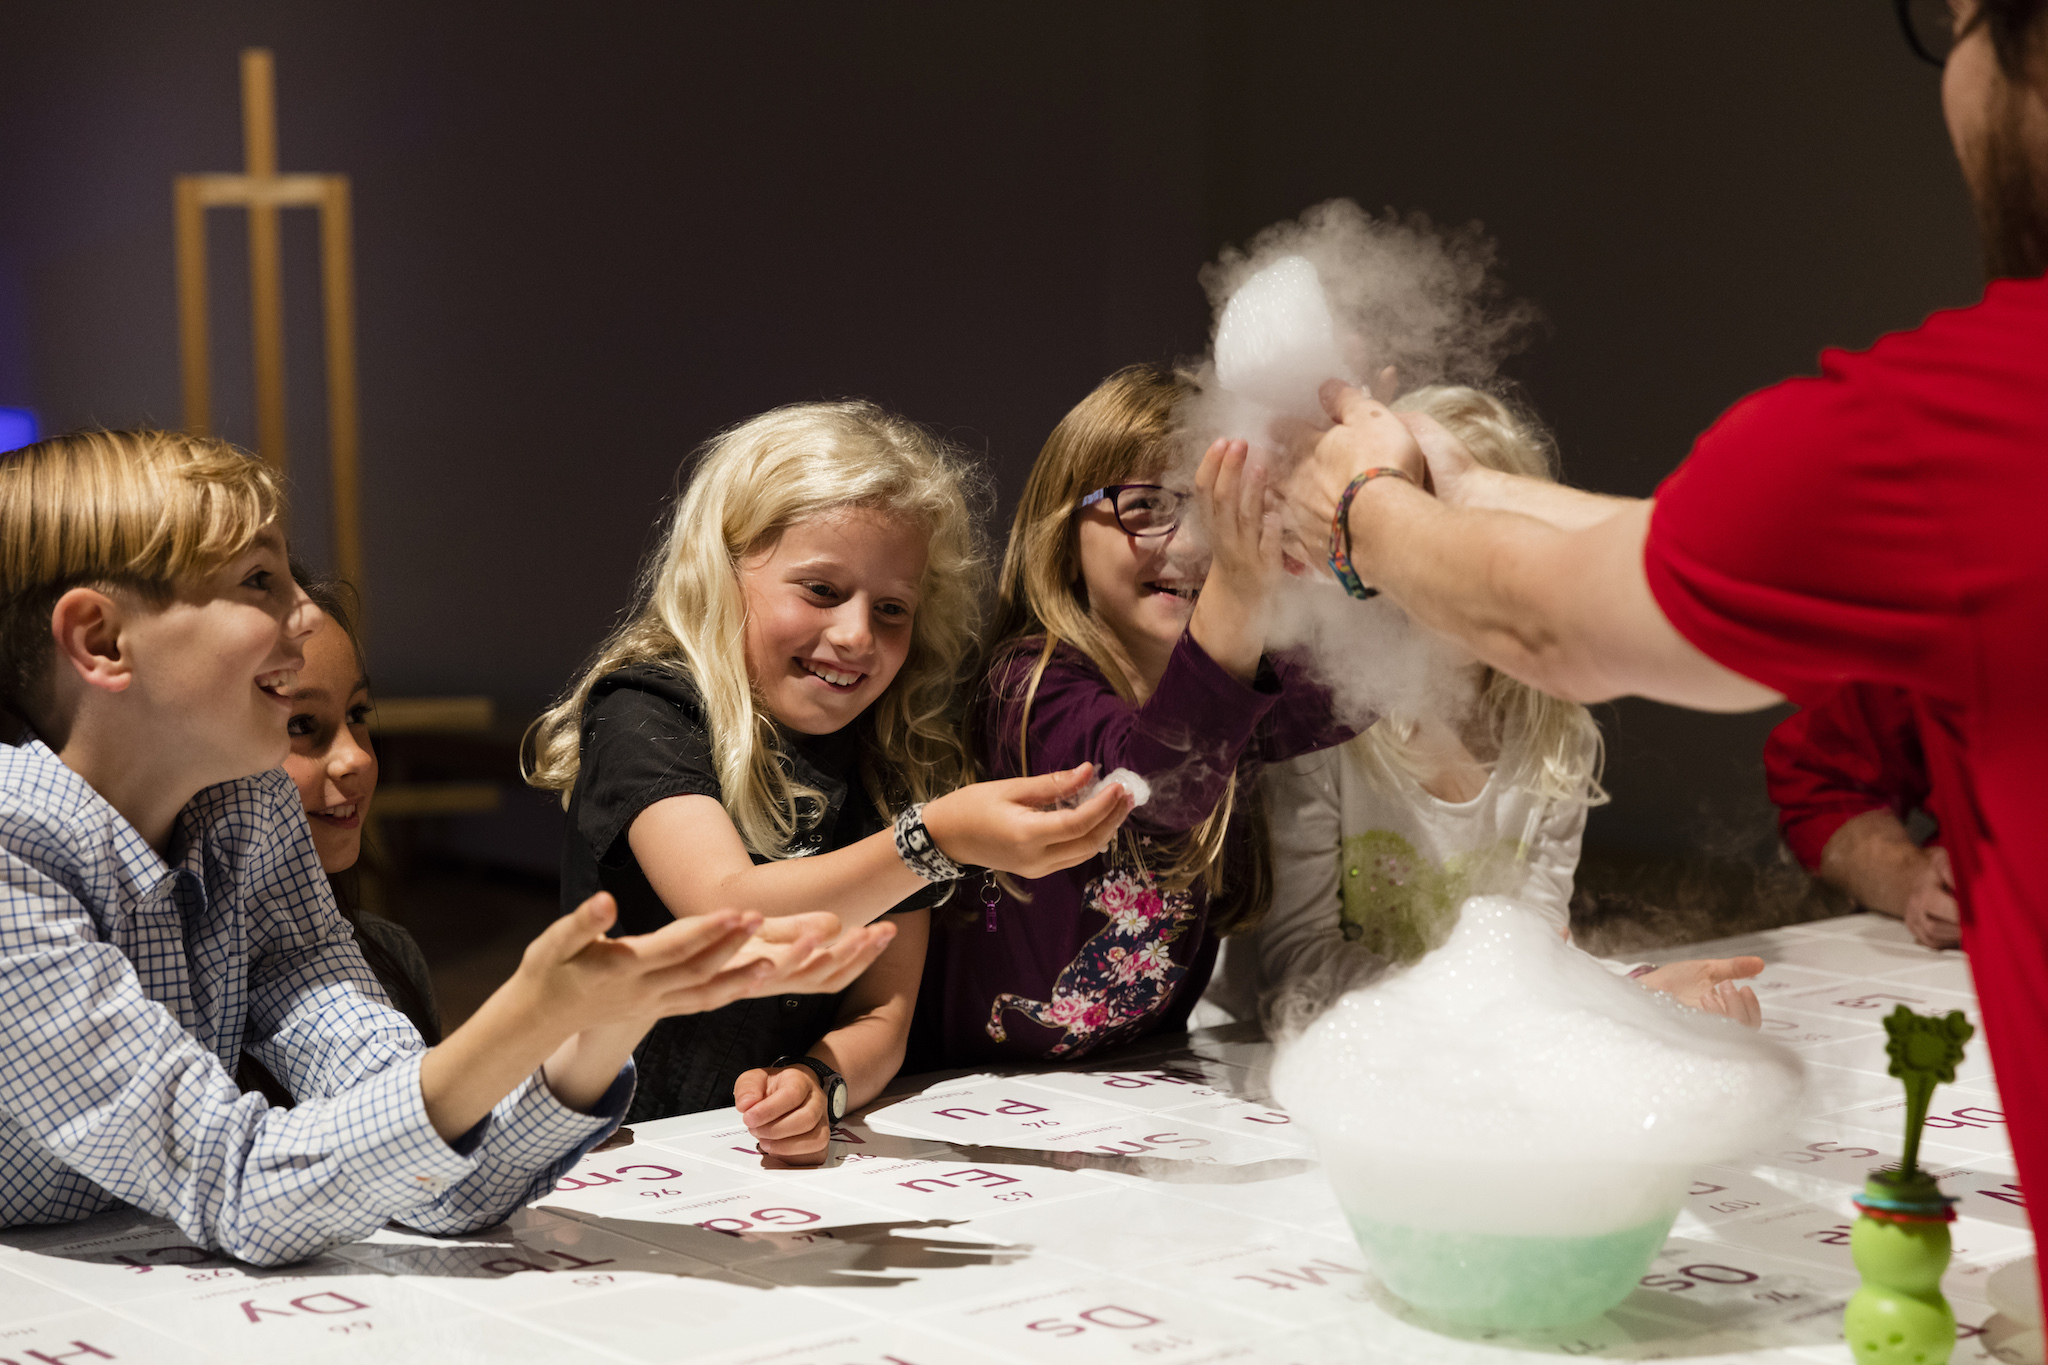 Wonderlab at the Science Museum, 18 things to do before you're 18